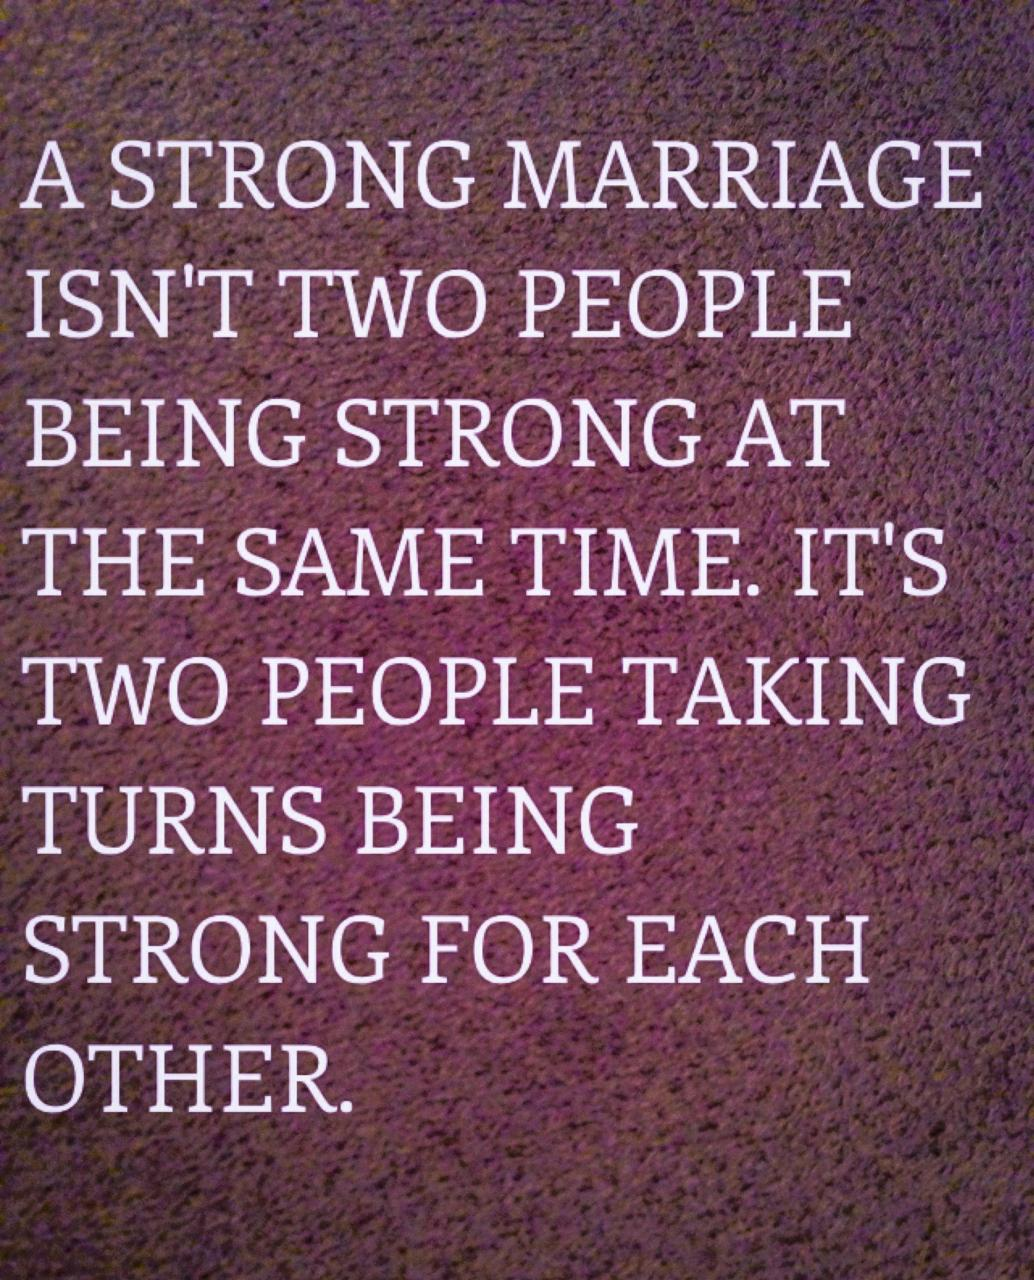 A Strong Marriage I Love Marriage Quotes